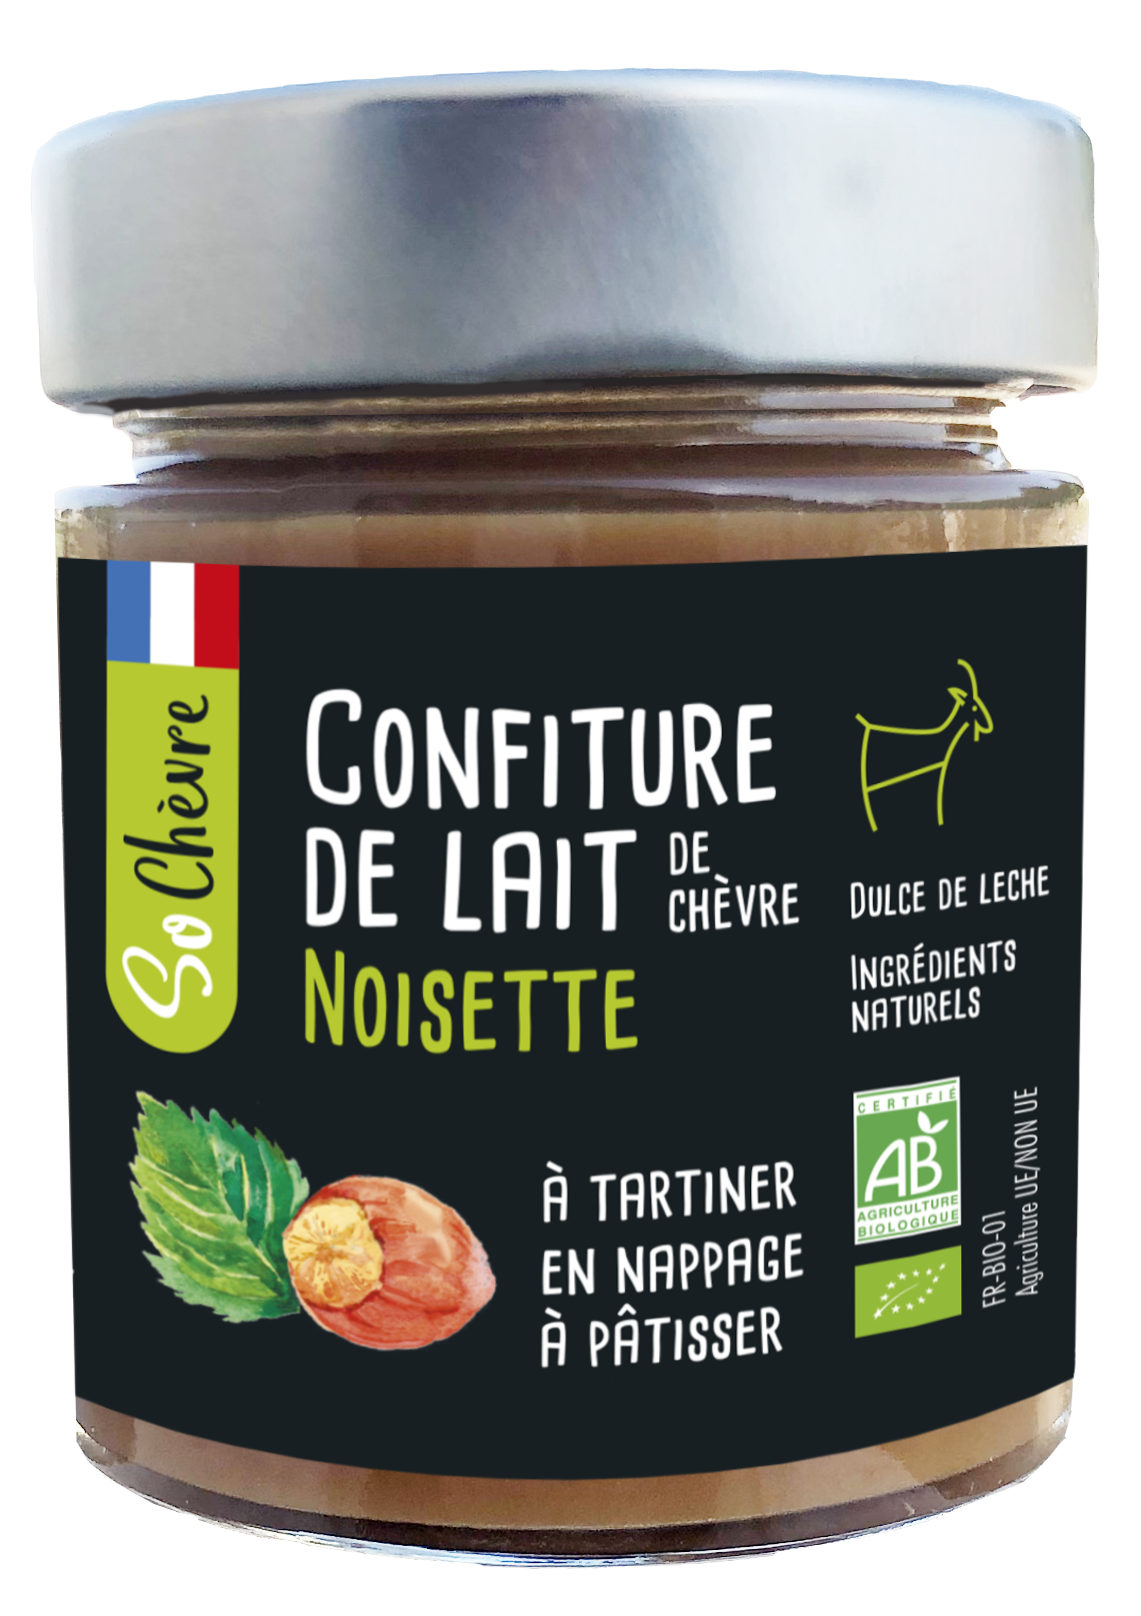 Confiture de lait So Chèvre noisette 180